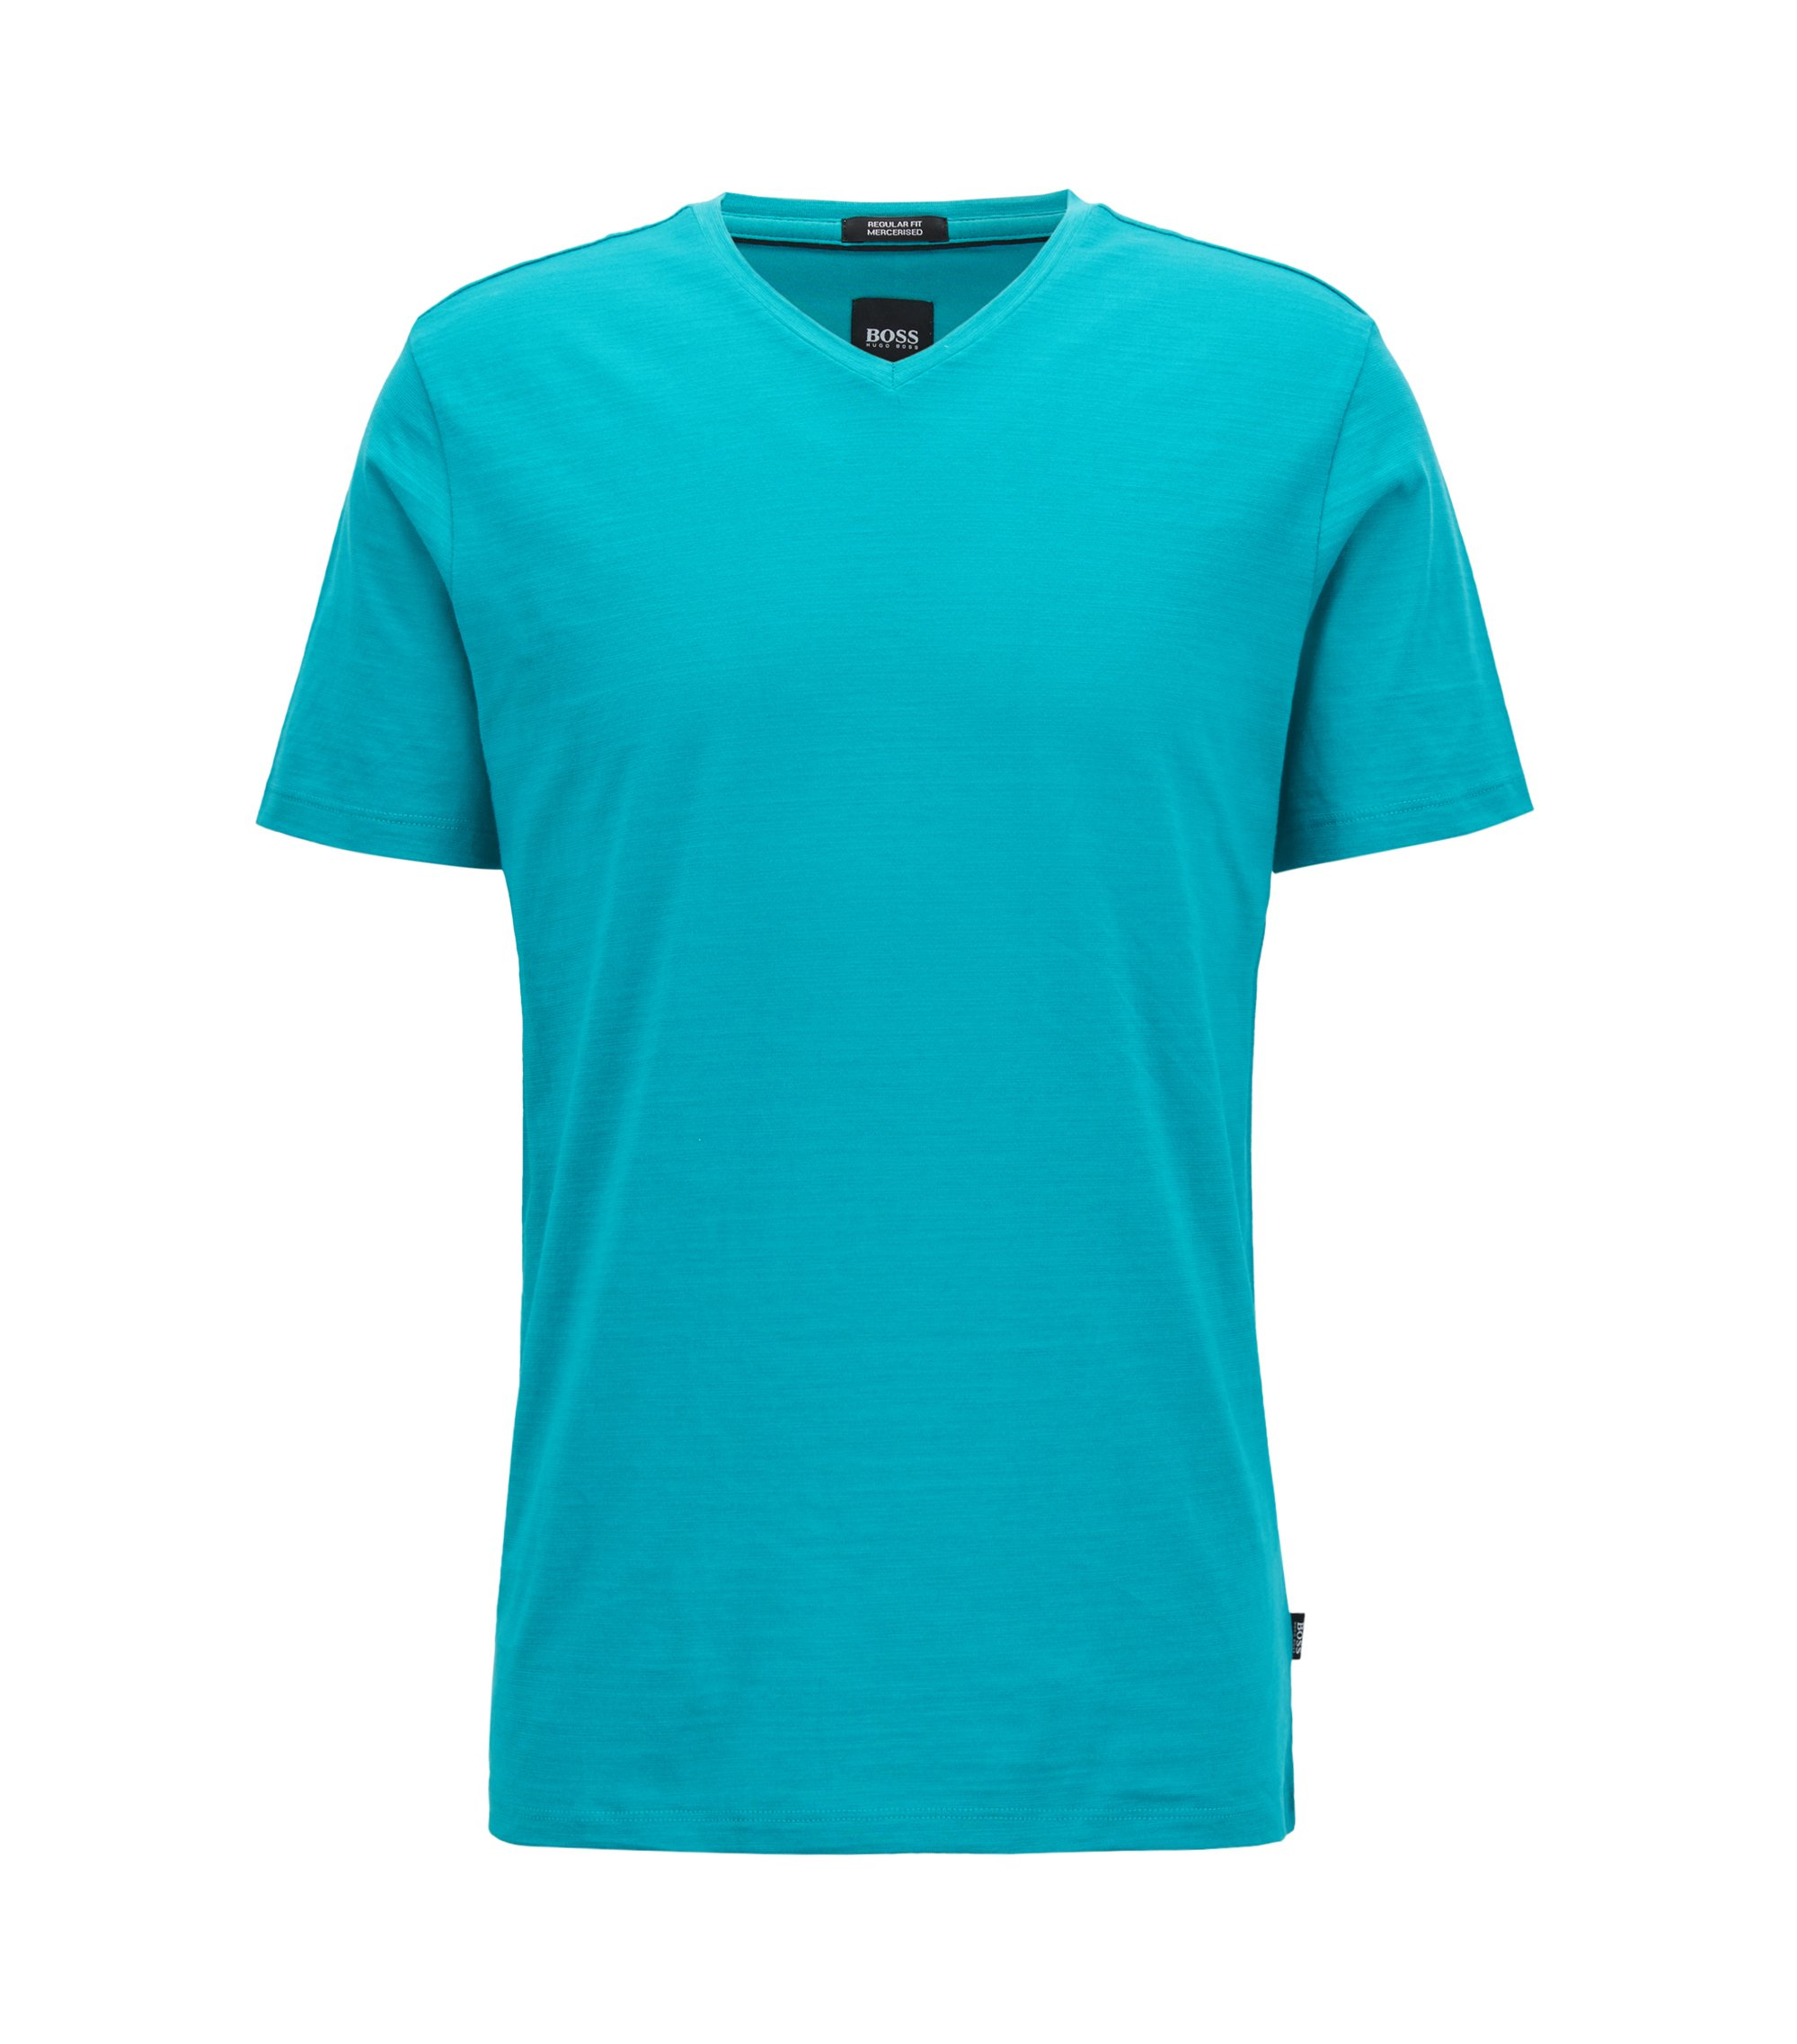 Regular-fit T-shirt in mercerized cotton, Green